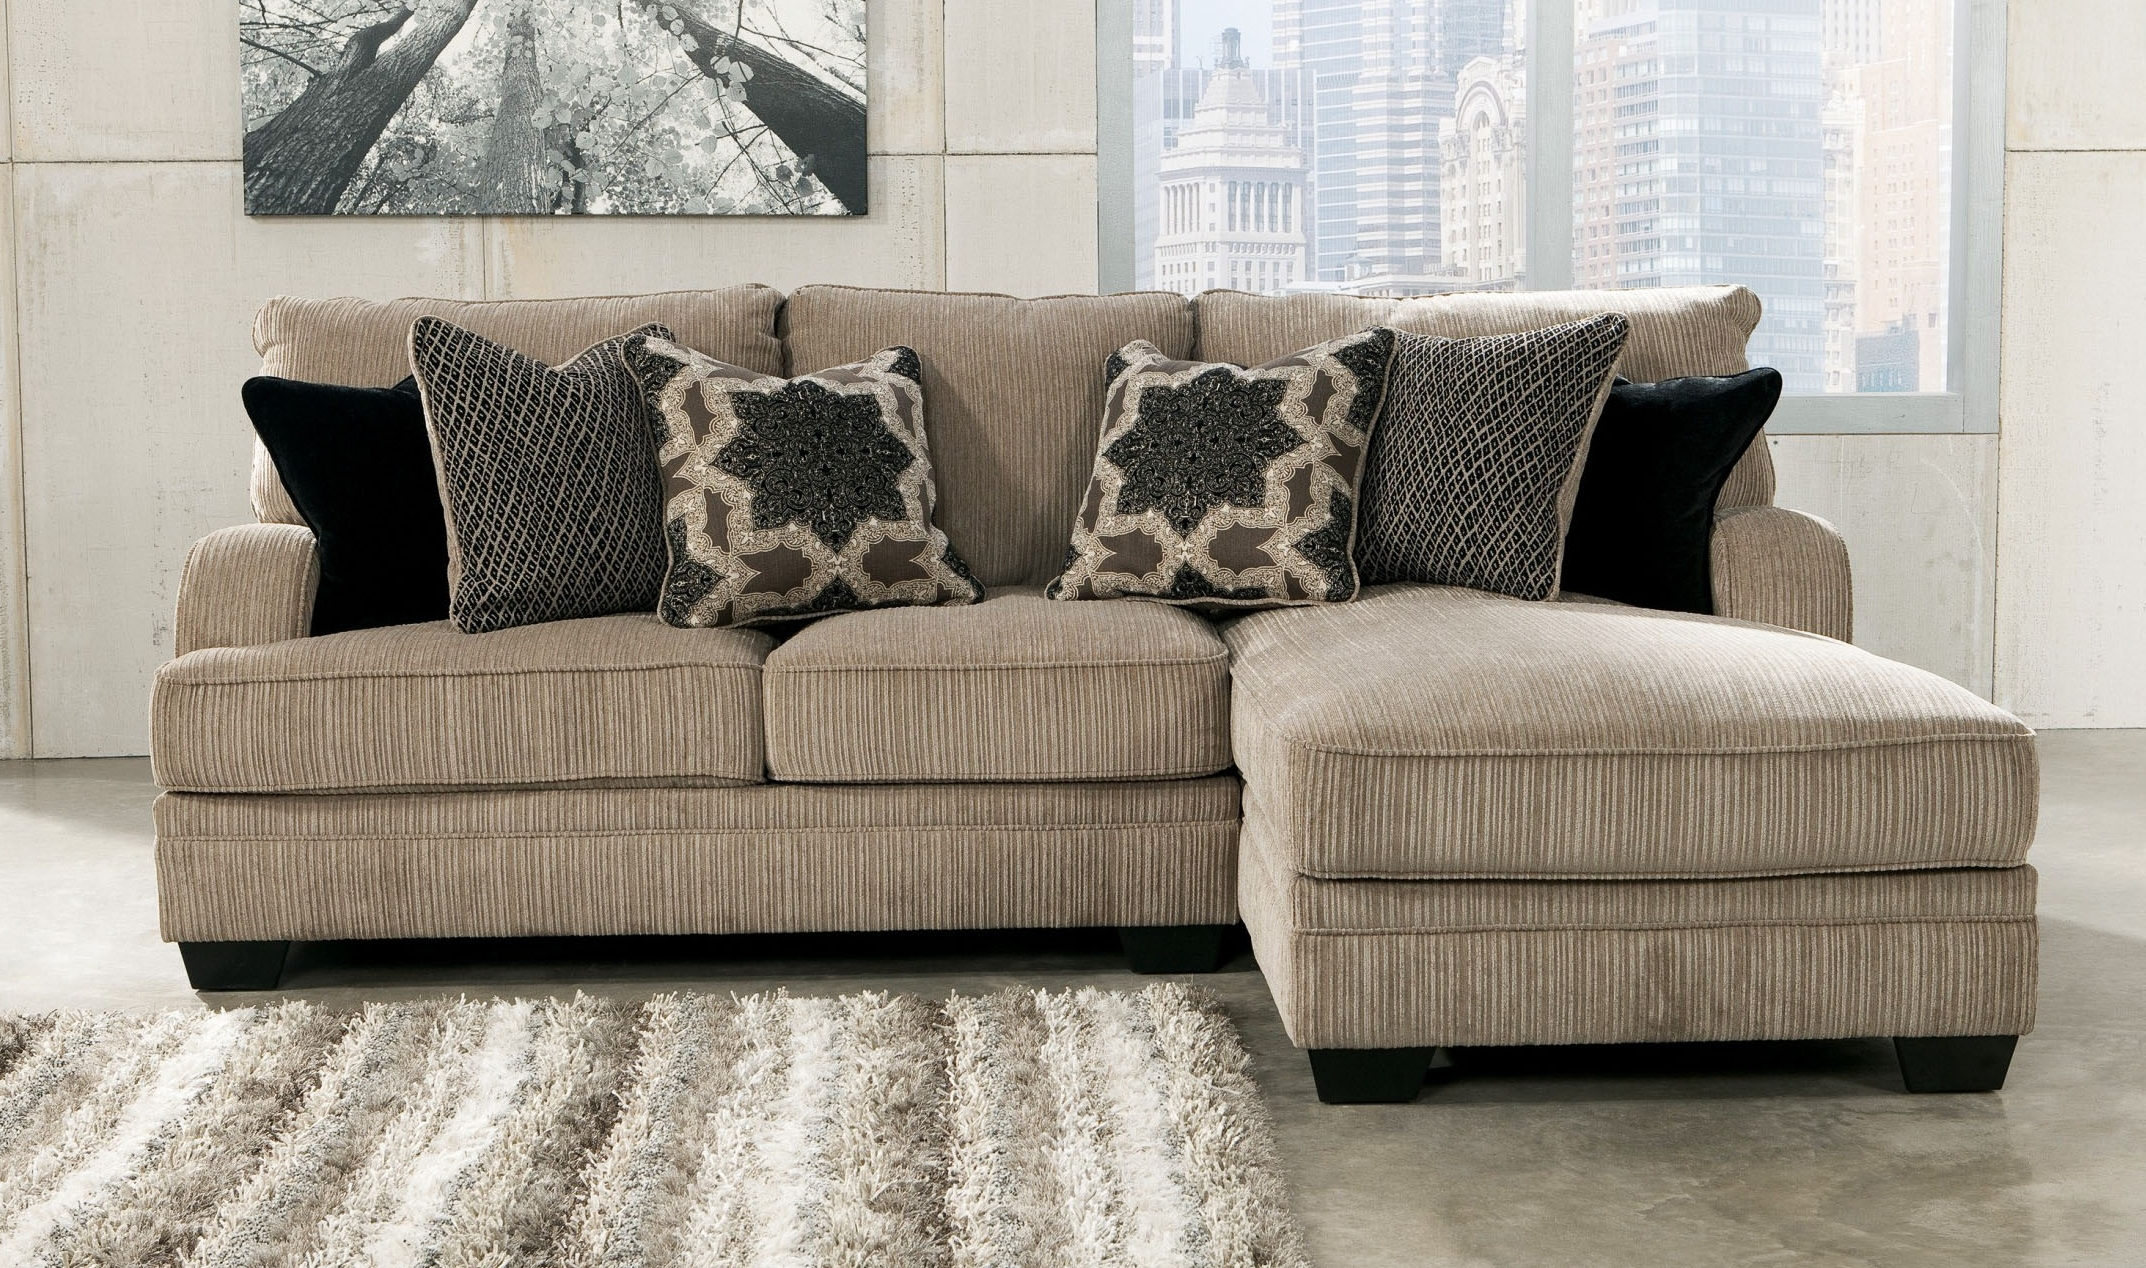 Small Sectional Furniture For The Best Looks Of Your House Pertaining To Most Current Sectional Sofas For Small Places (Gallery 16 of 20)